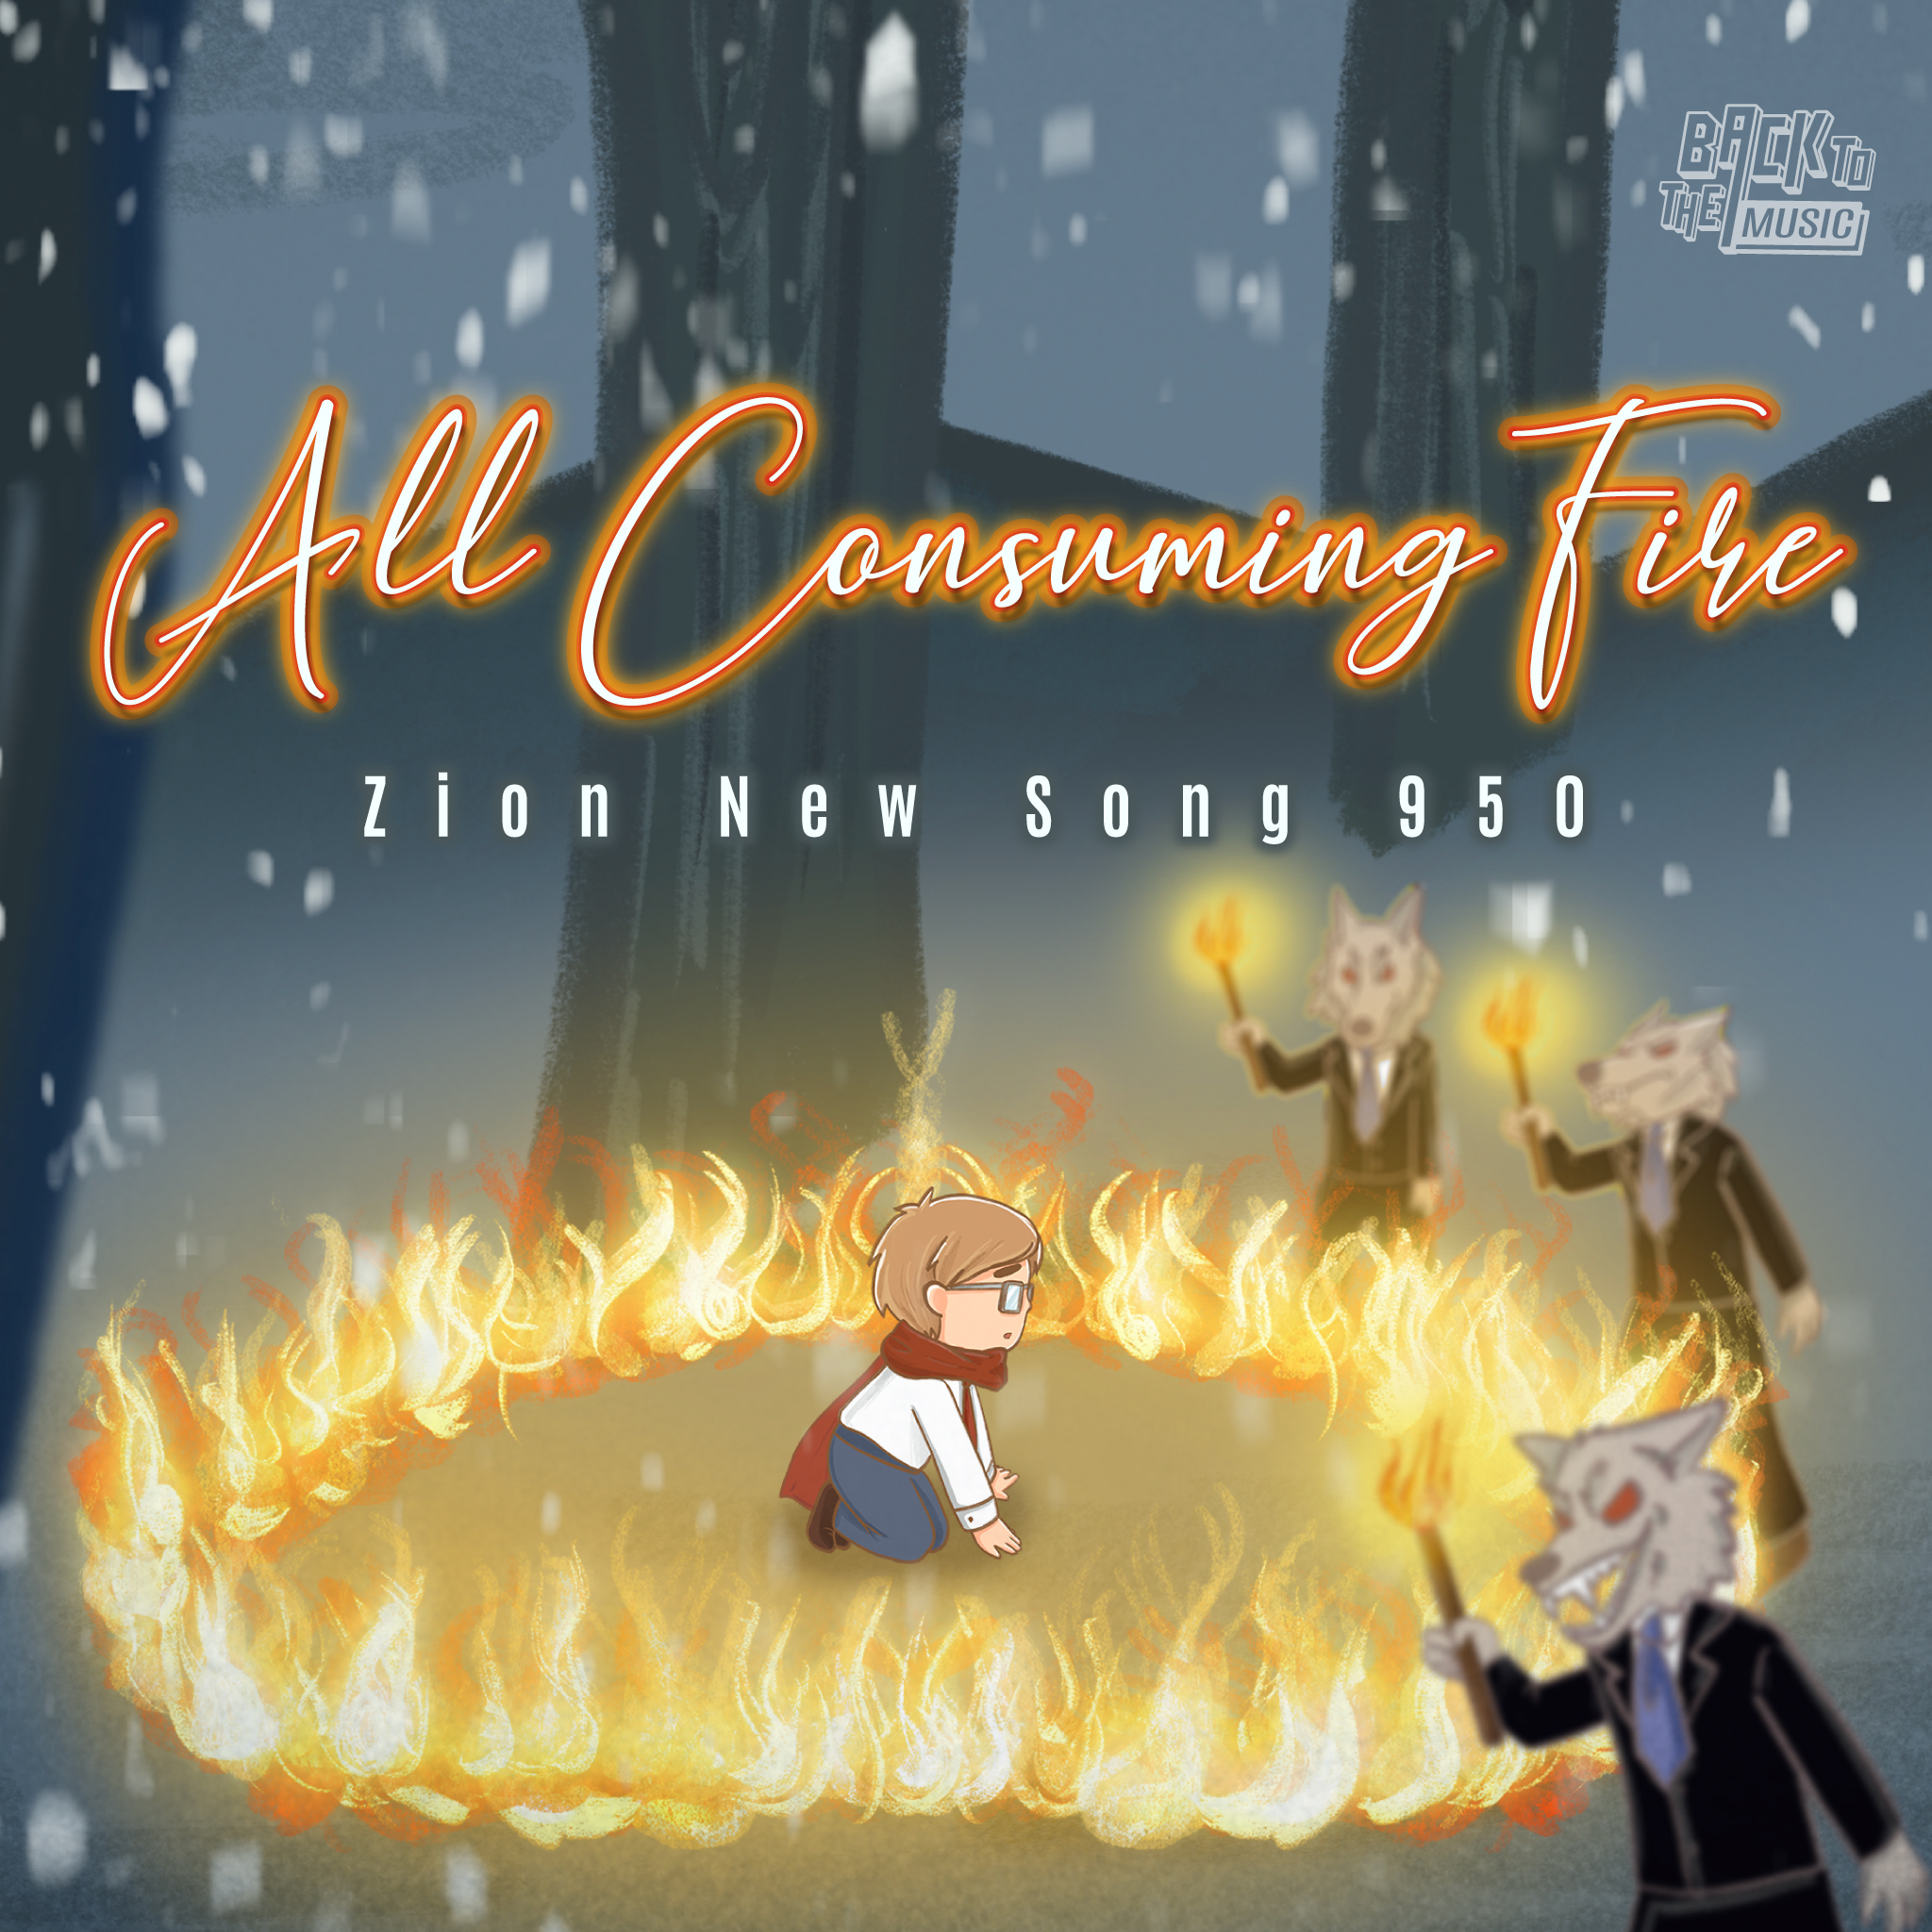 【All Consuming Fire 】   Music   Praise the Lord 2021   Back To The Music